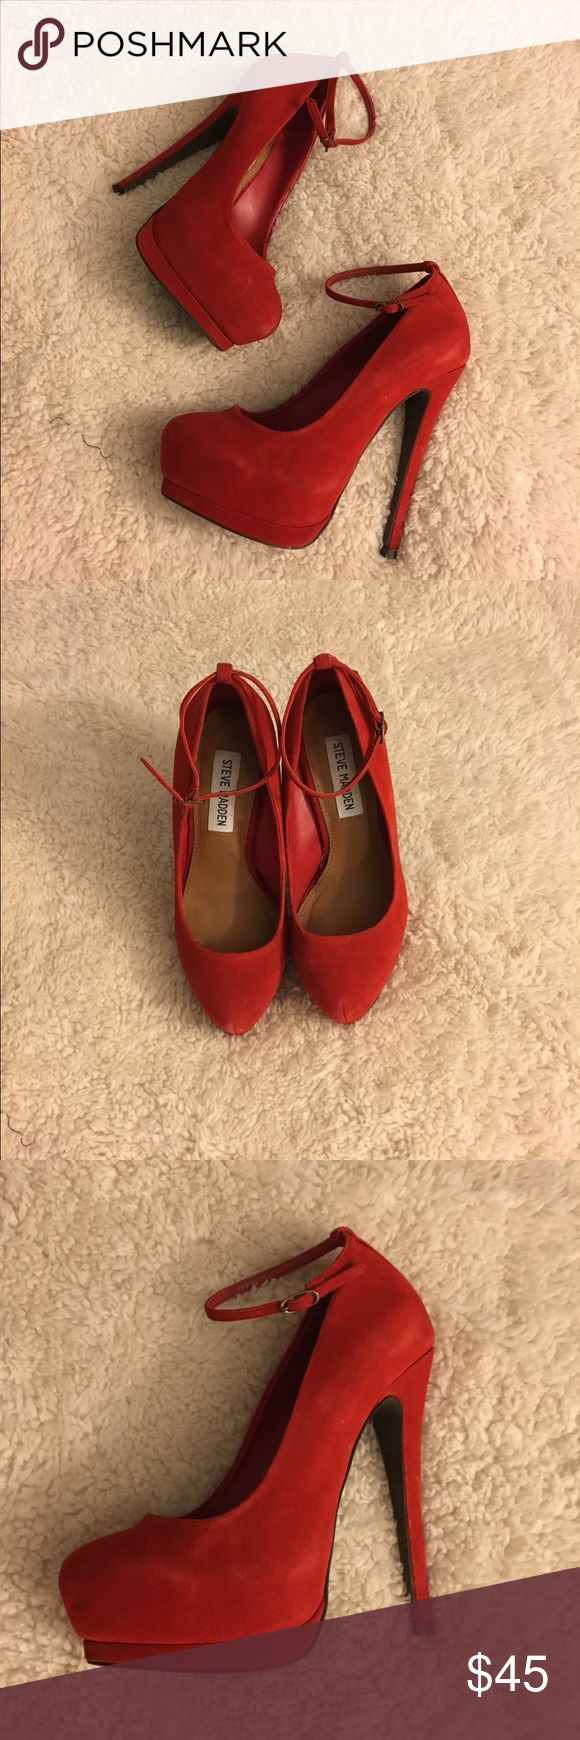 Steven madden shoes Steve Madden obsessed Red Suede Heel size 5.5 w/ 5inch heel. Worn twice,Perfect condition 😍👠👠 Steve Madden Shoes Heels